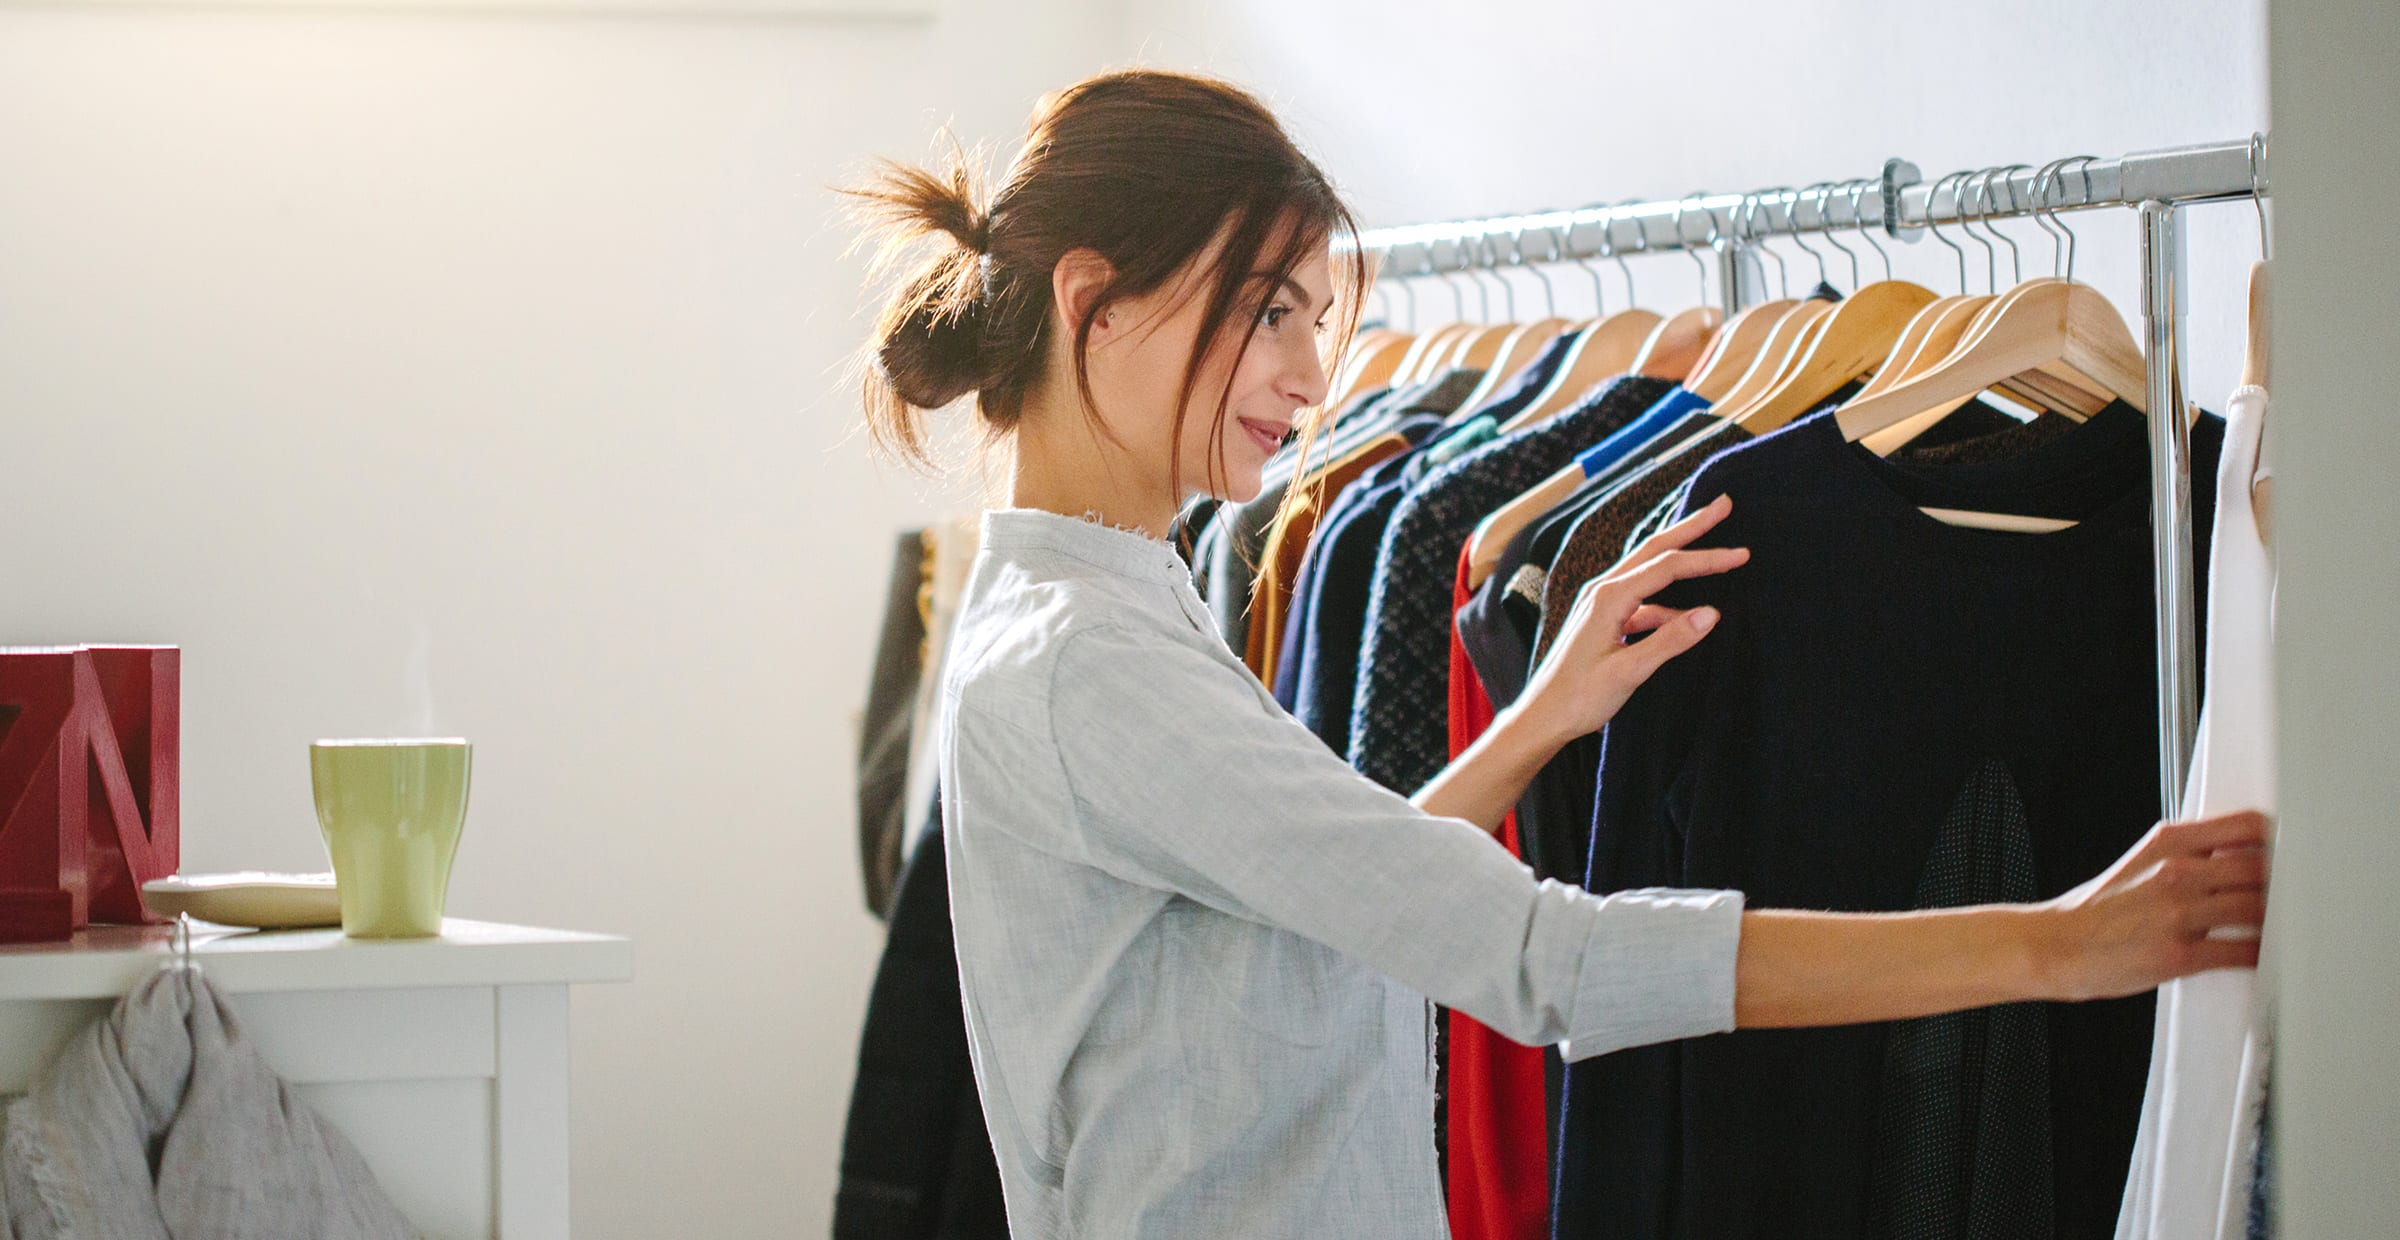 4 Closet Organizing Tips to Try